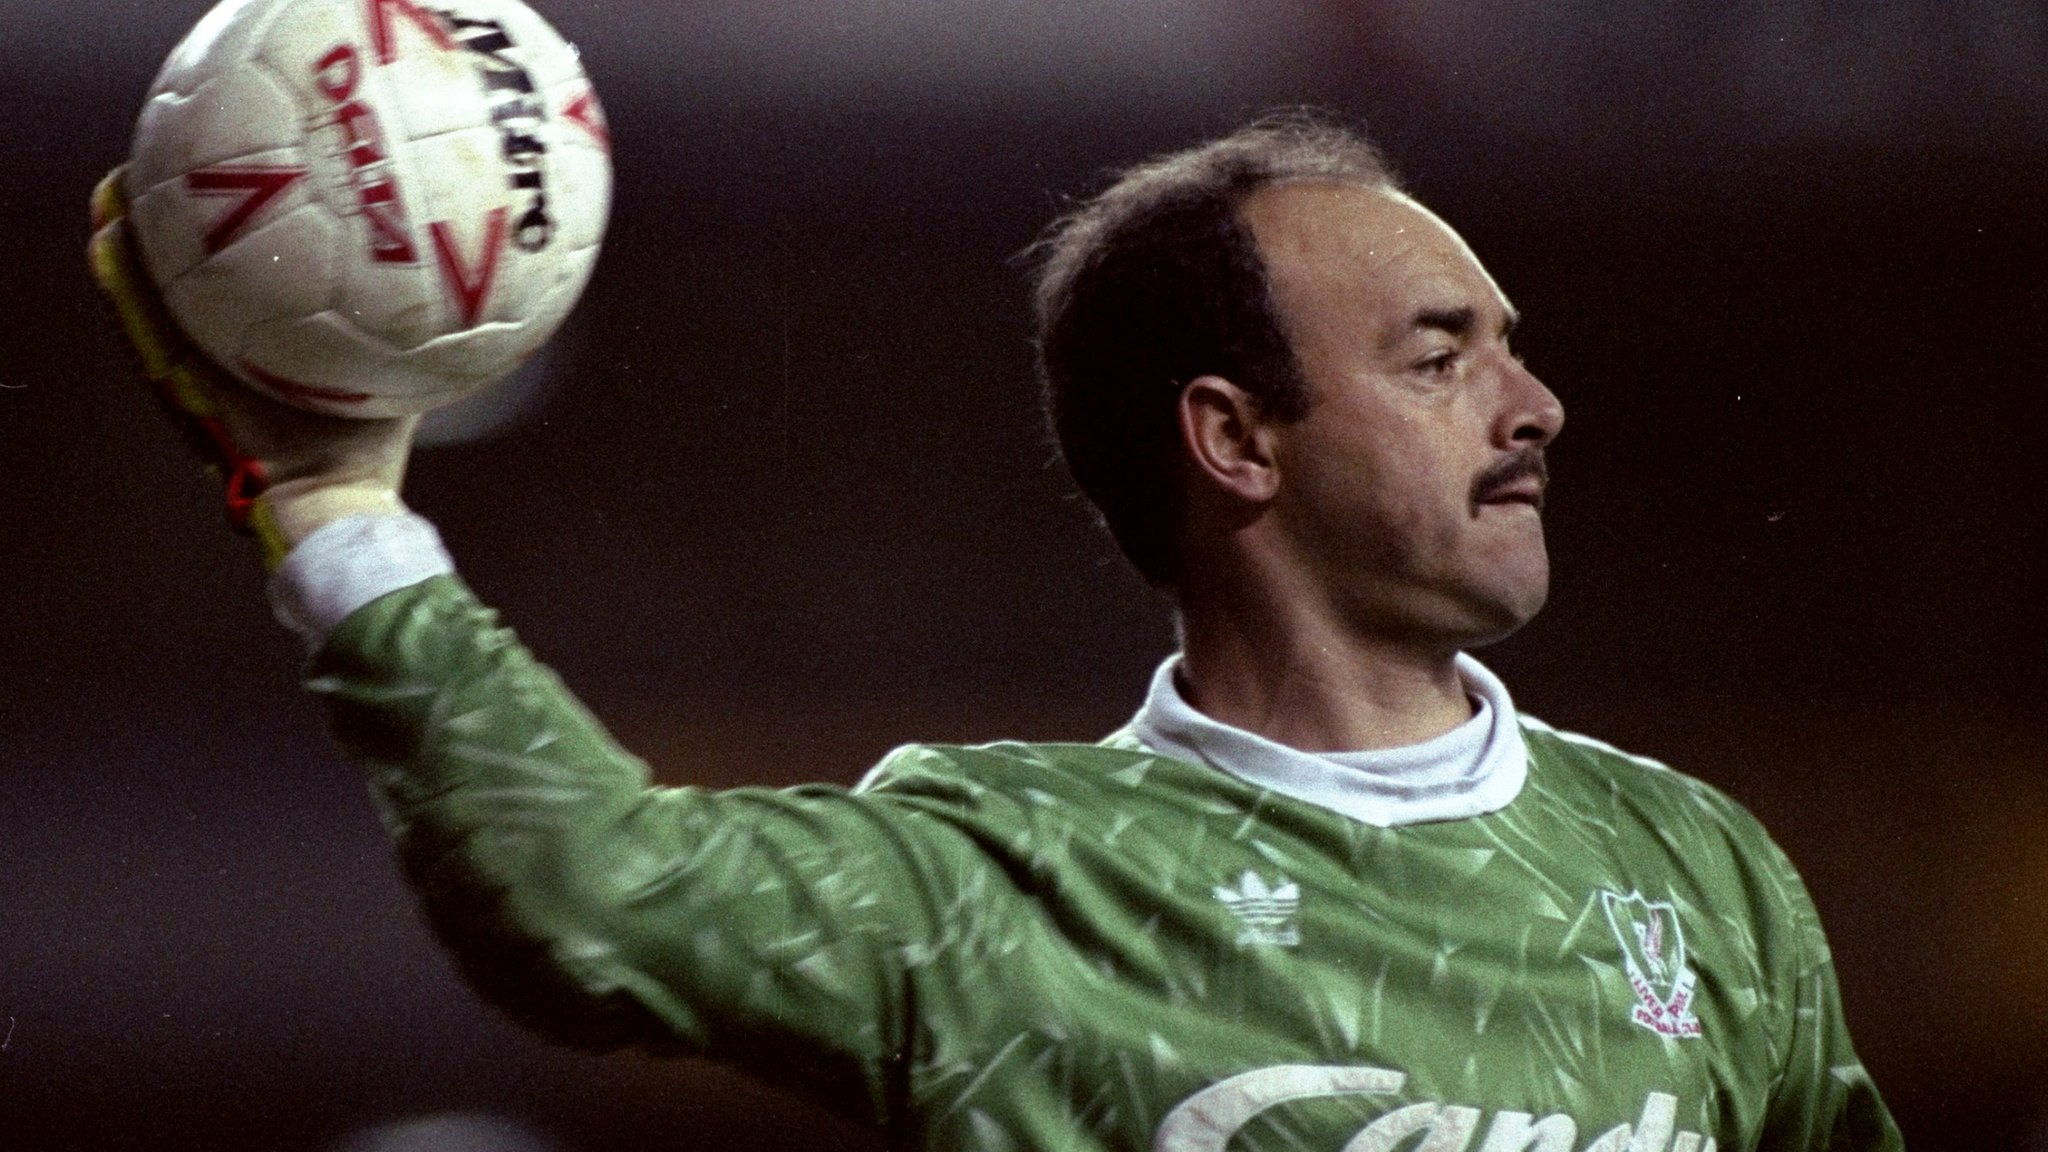 Football saved me after I killed enemy during war - Liverpool legend Grobbelaar